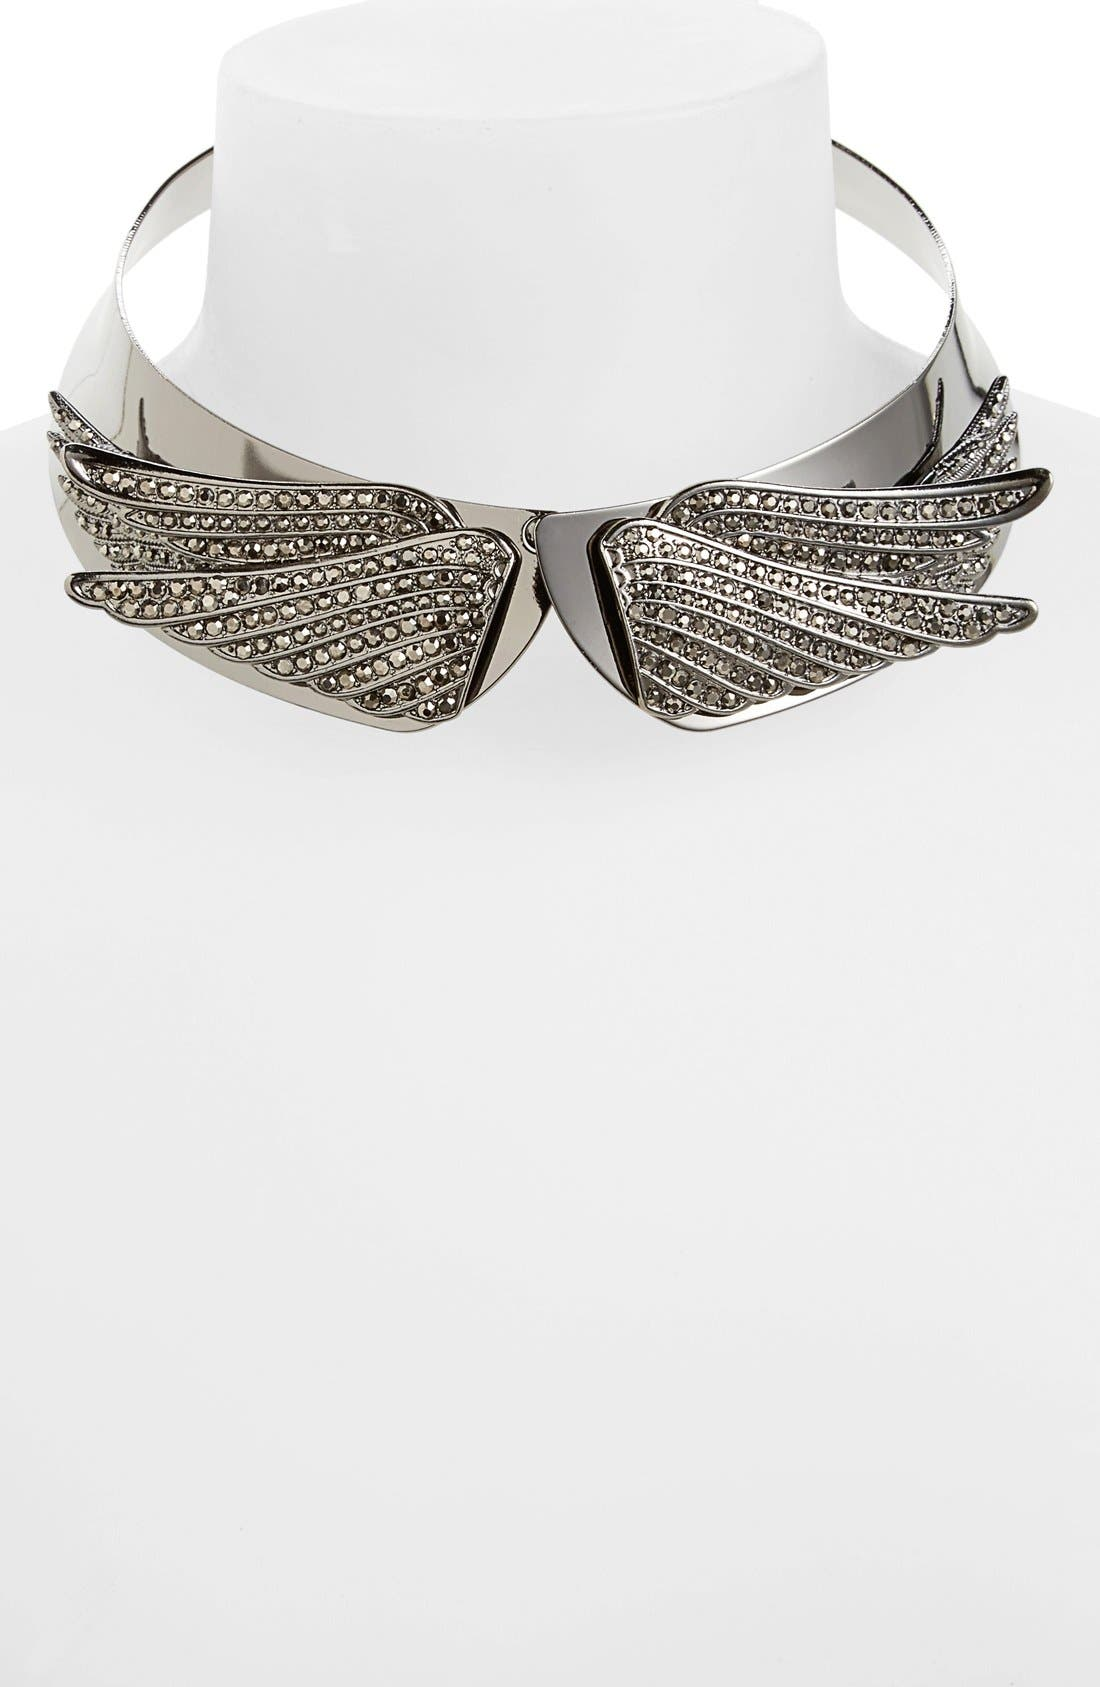 Alternate Image 1 Selected - Leith 'Wings' Collar Necklace